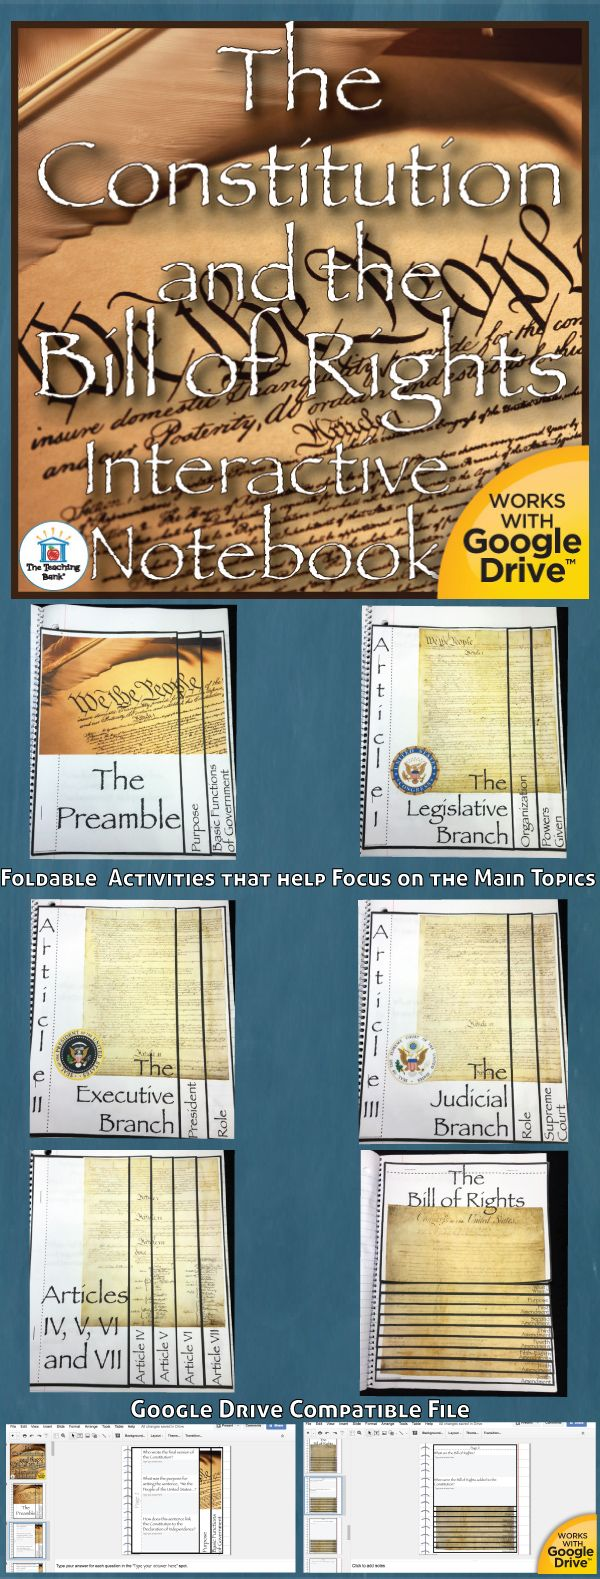 The Constitution and the Bill of Rights Interactive Notebook, which works for both print and Google Drive™, investigates and helps gain understanding of the United States Constitution and the Bill of Rights.